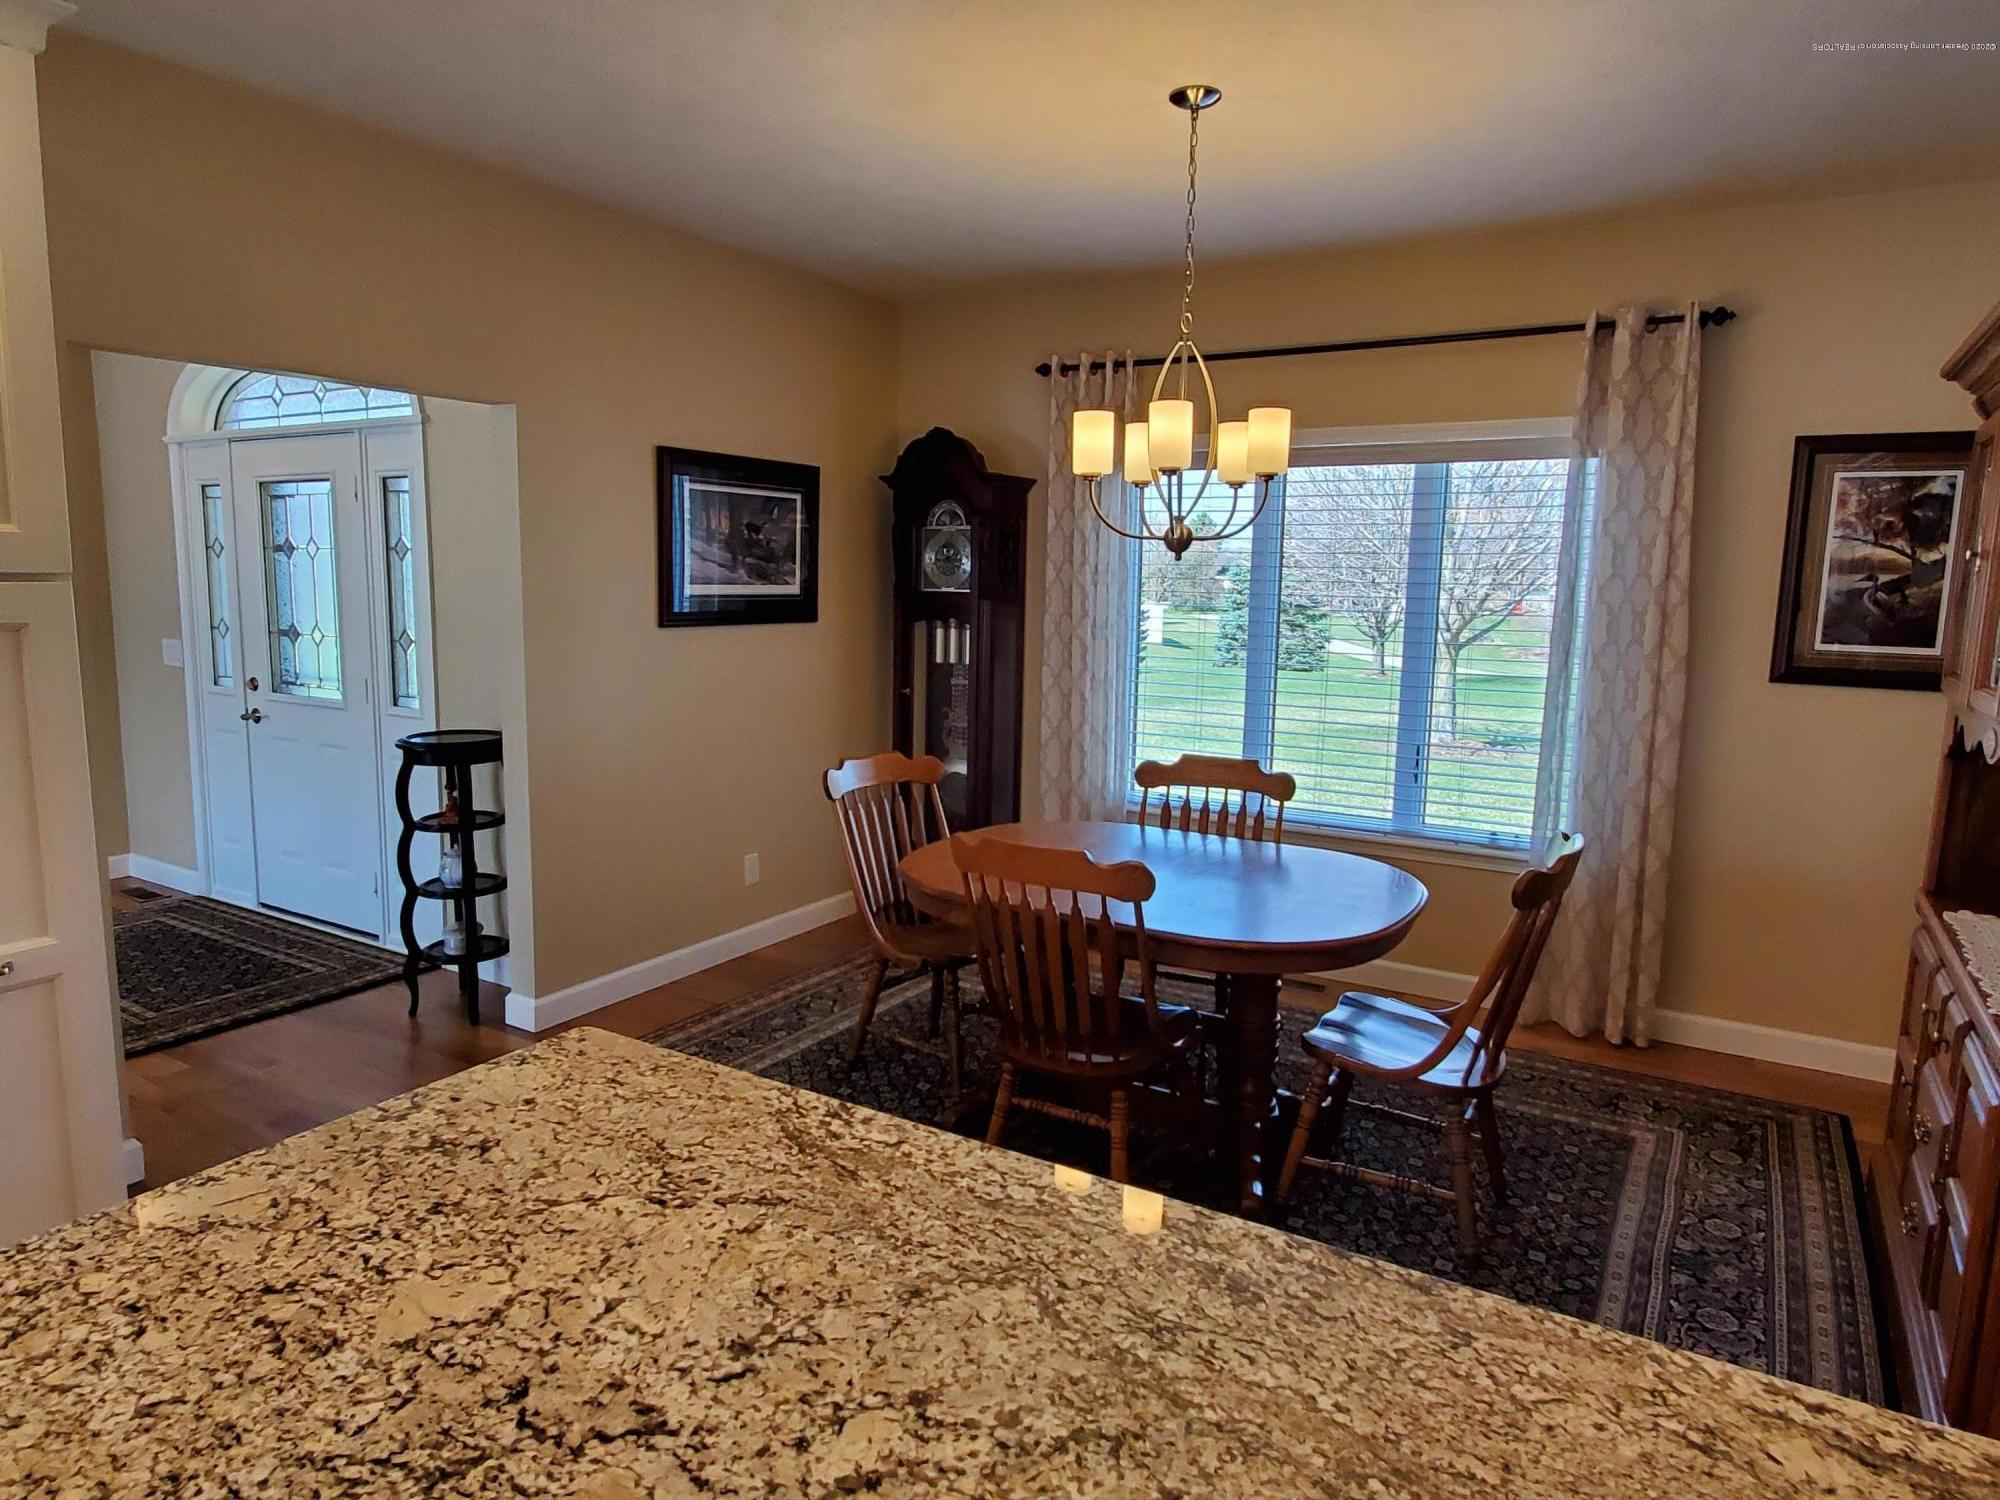 558 N Wheaton Rd - Dining Area - 15